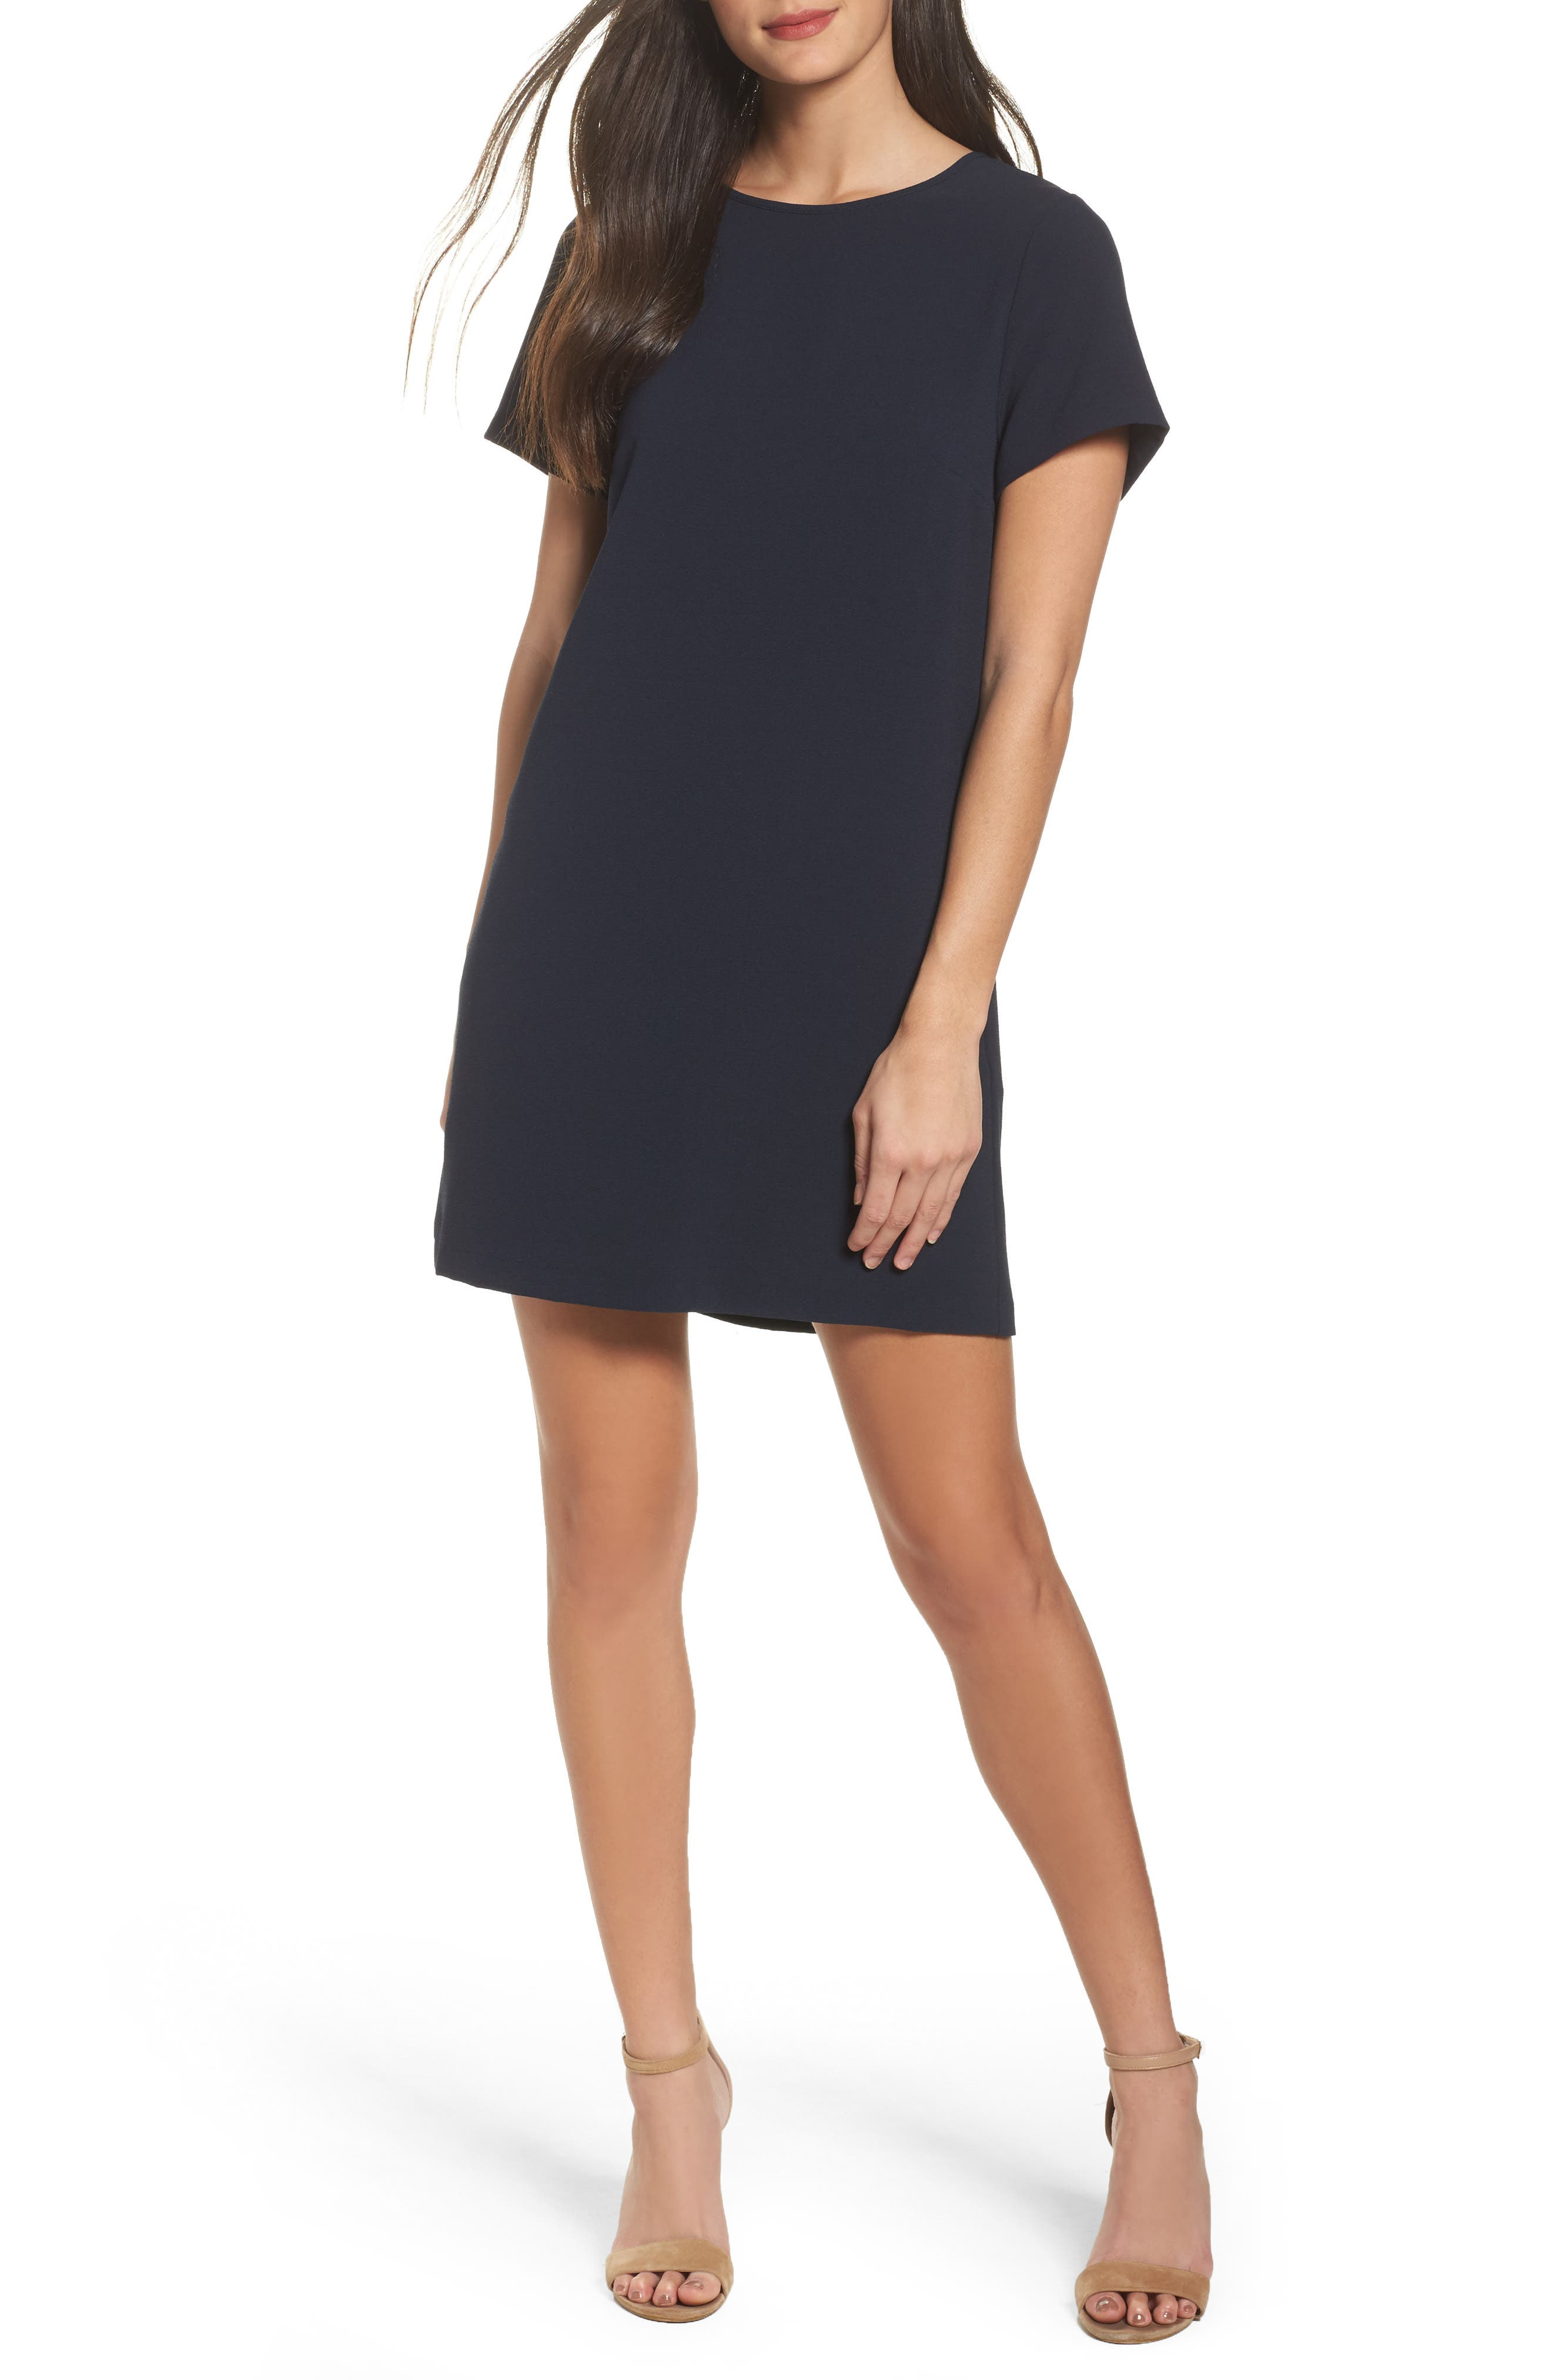 Felicity & Coco Devery Crepe Shift Dress (Nordstrom Exclusive)